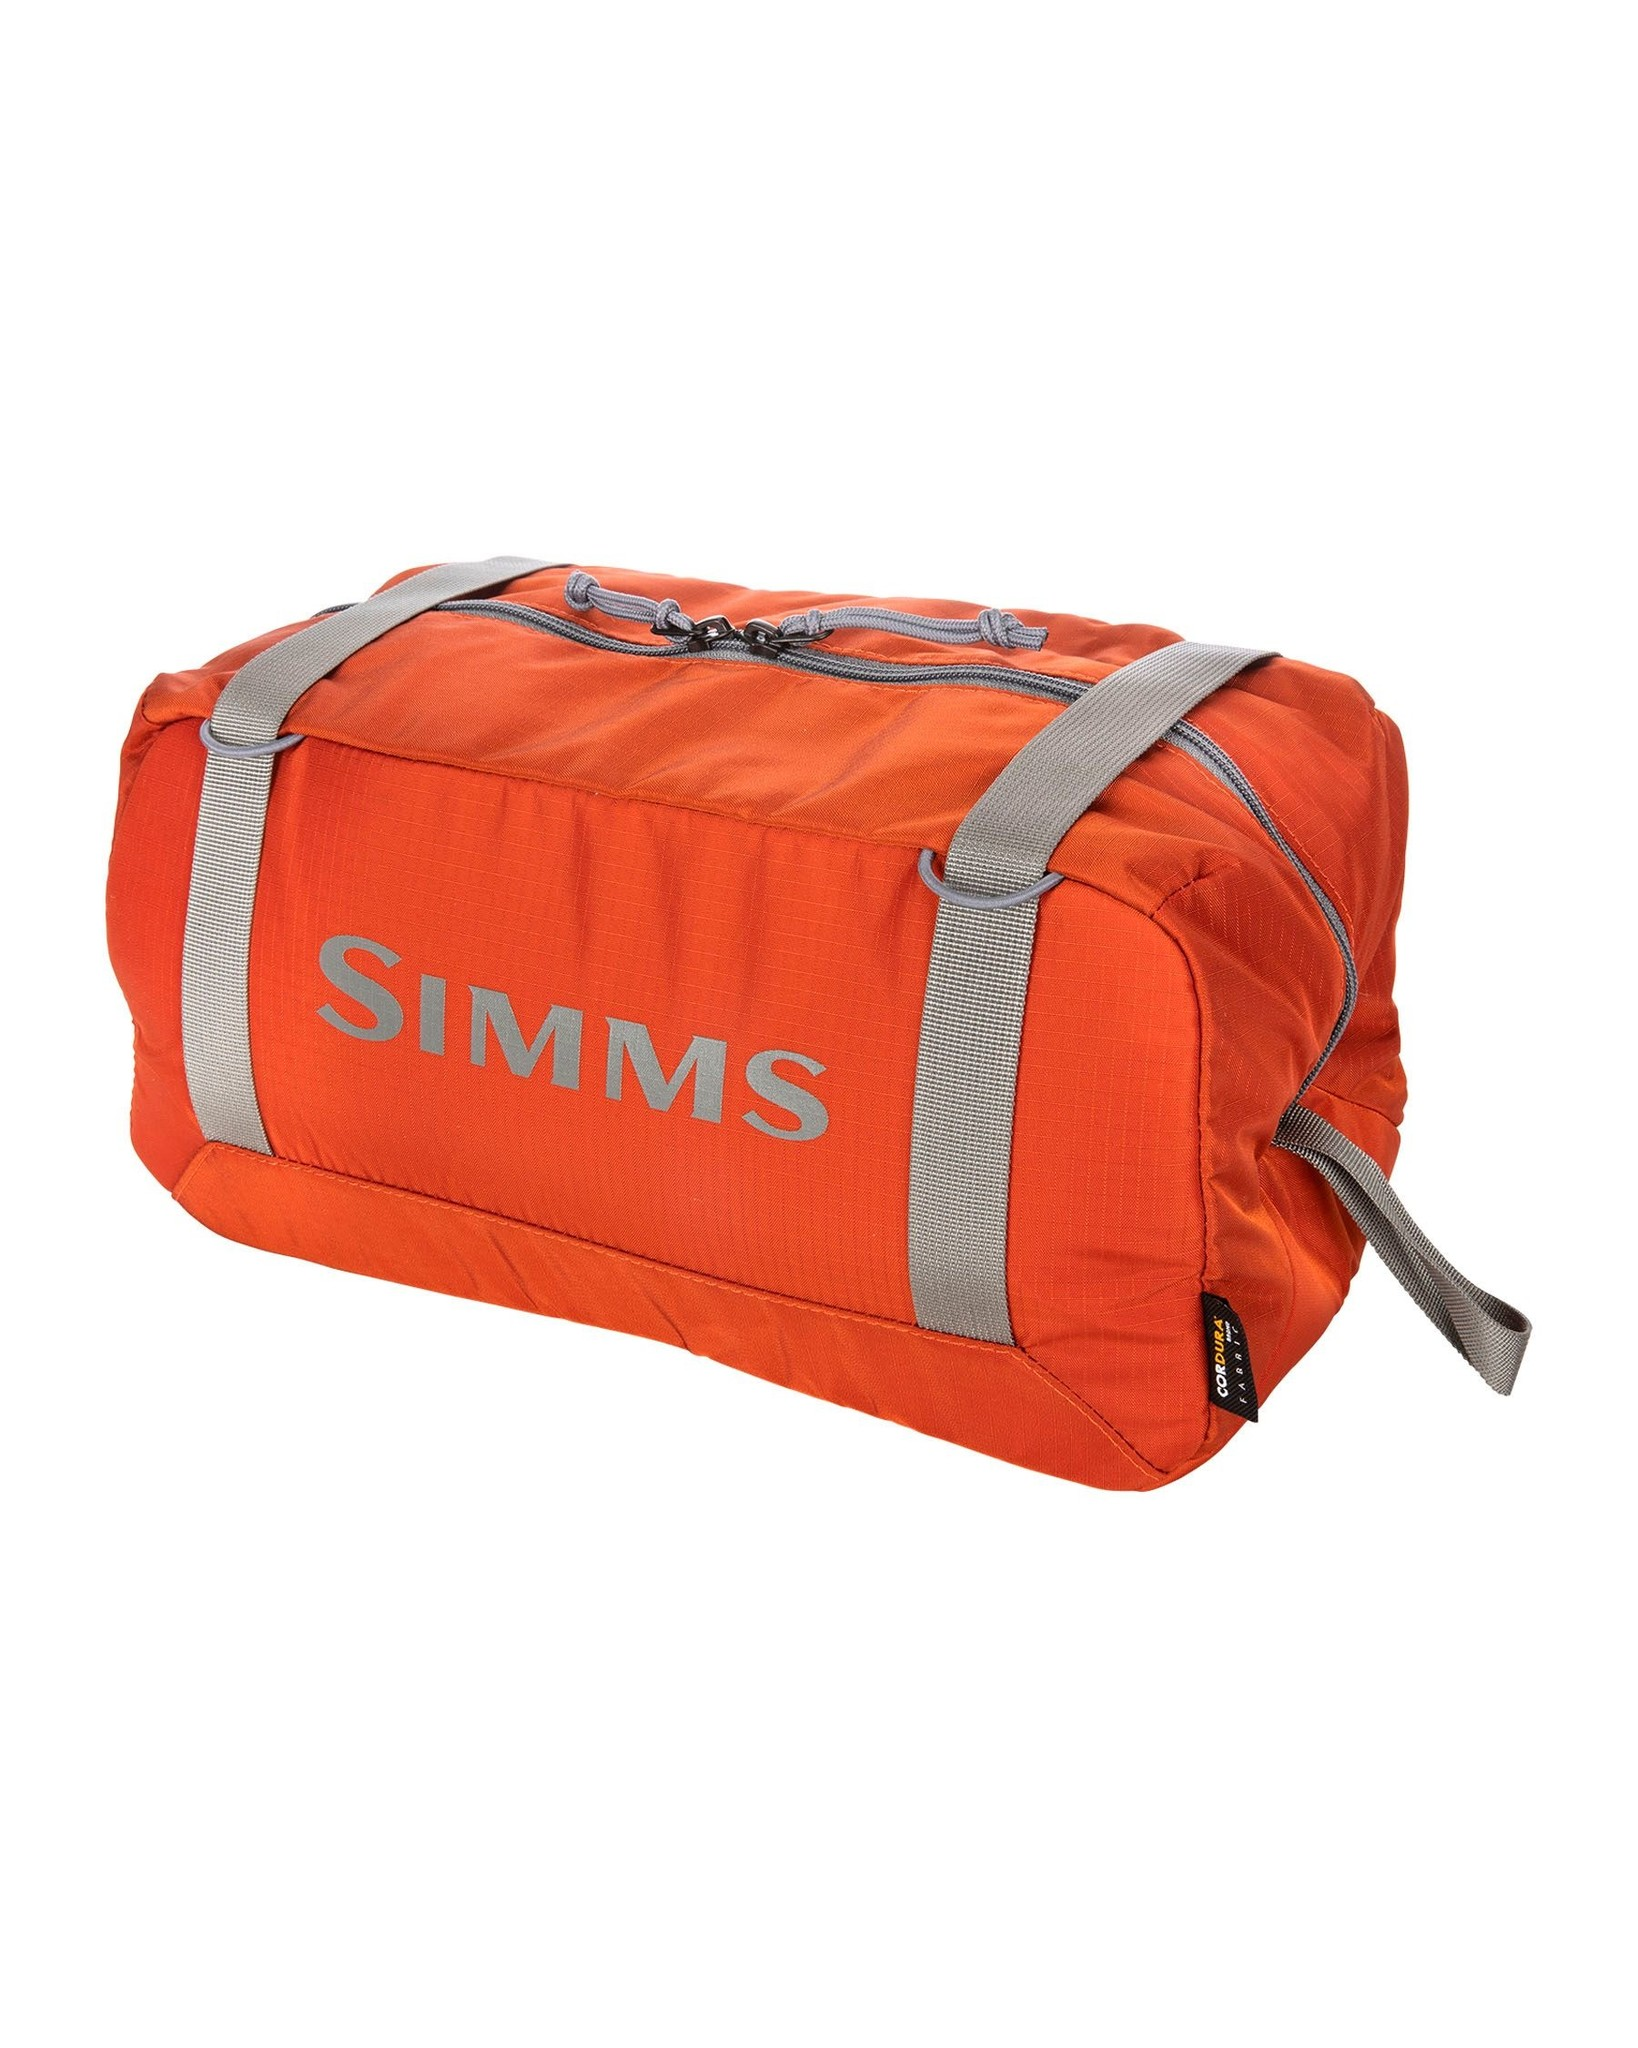 SIMMS SIMMS GTS PADDED CUBE - LARGE